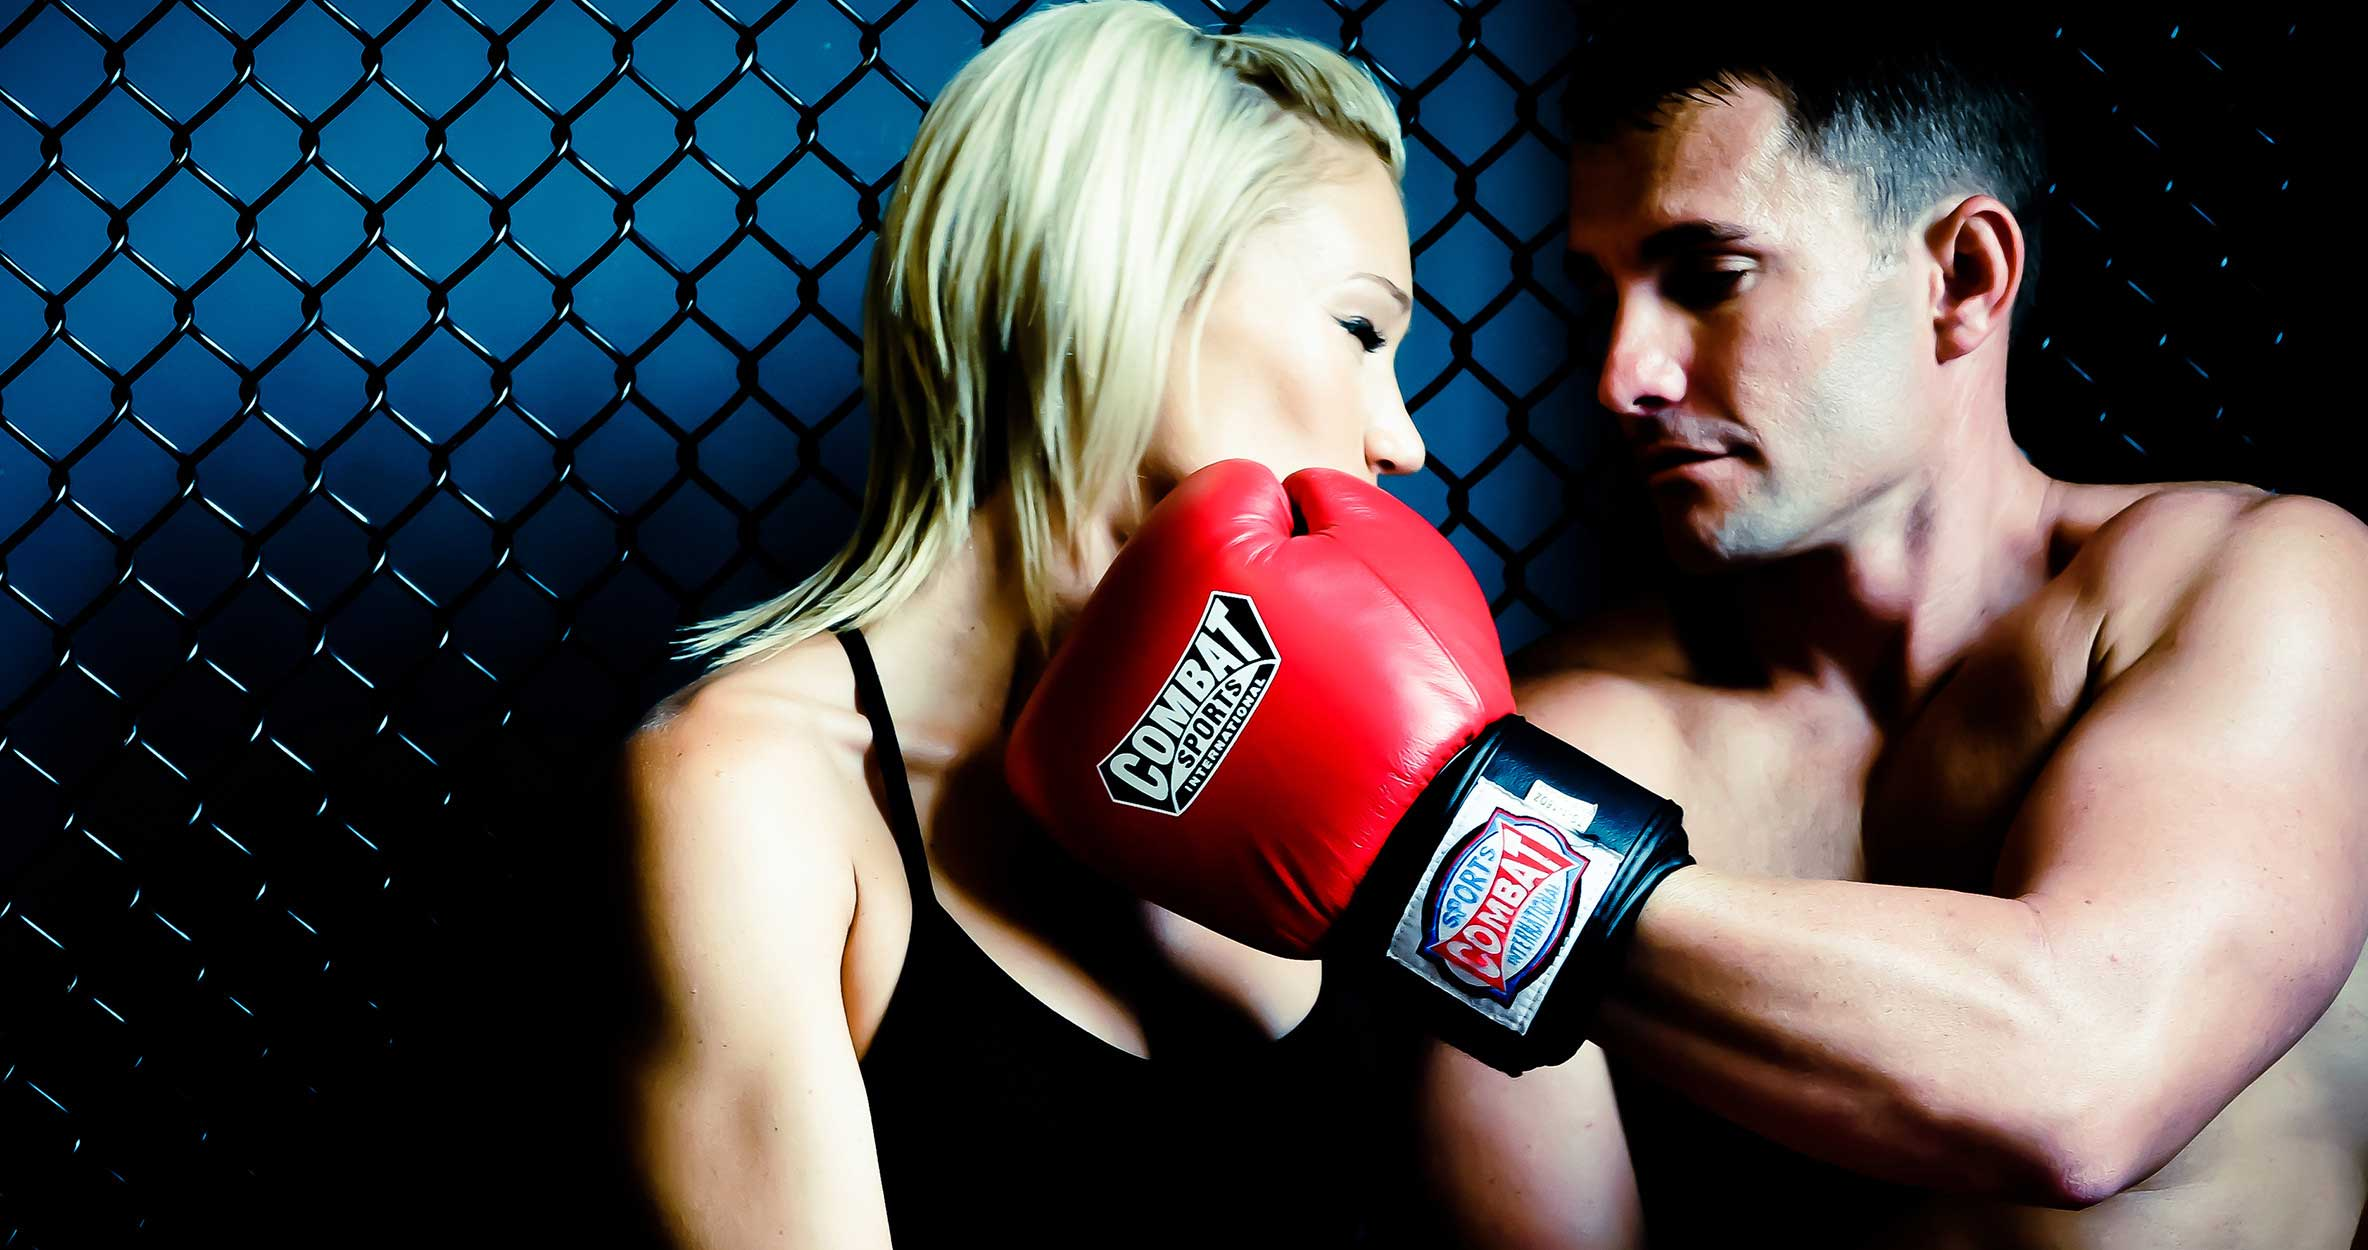 Couple Photography | Boxing Theme | Mel and Tim Photography